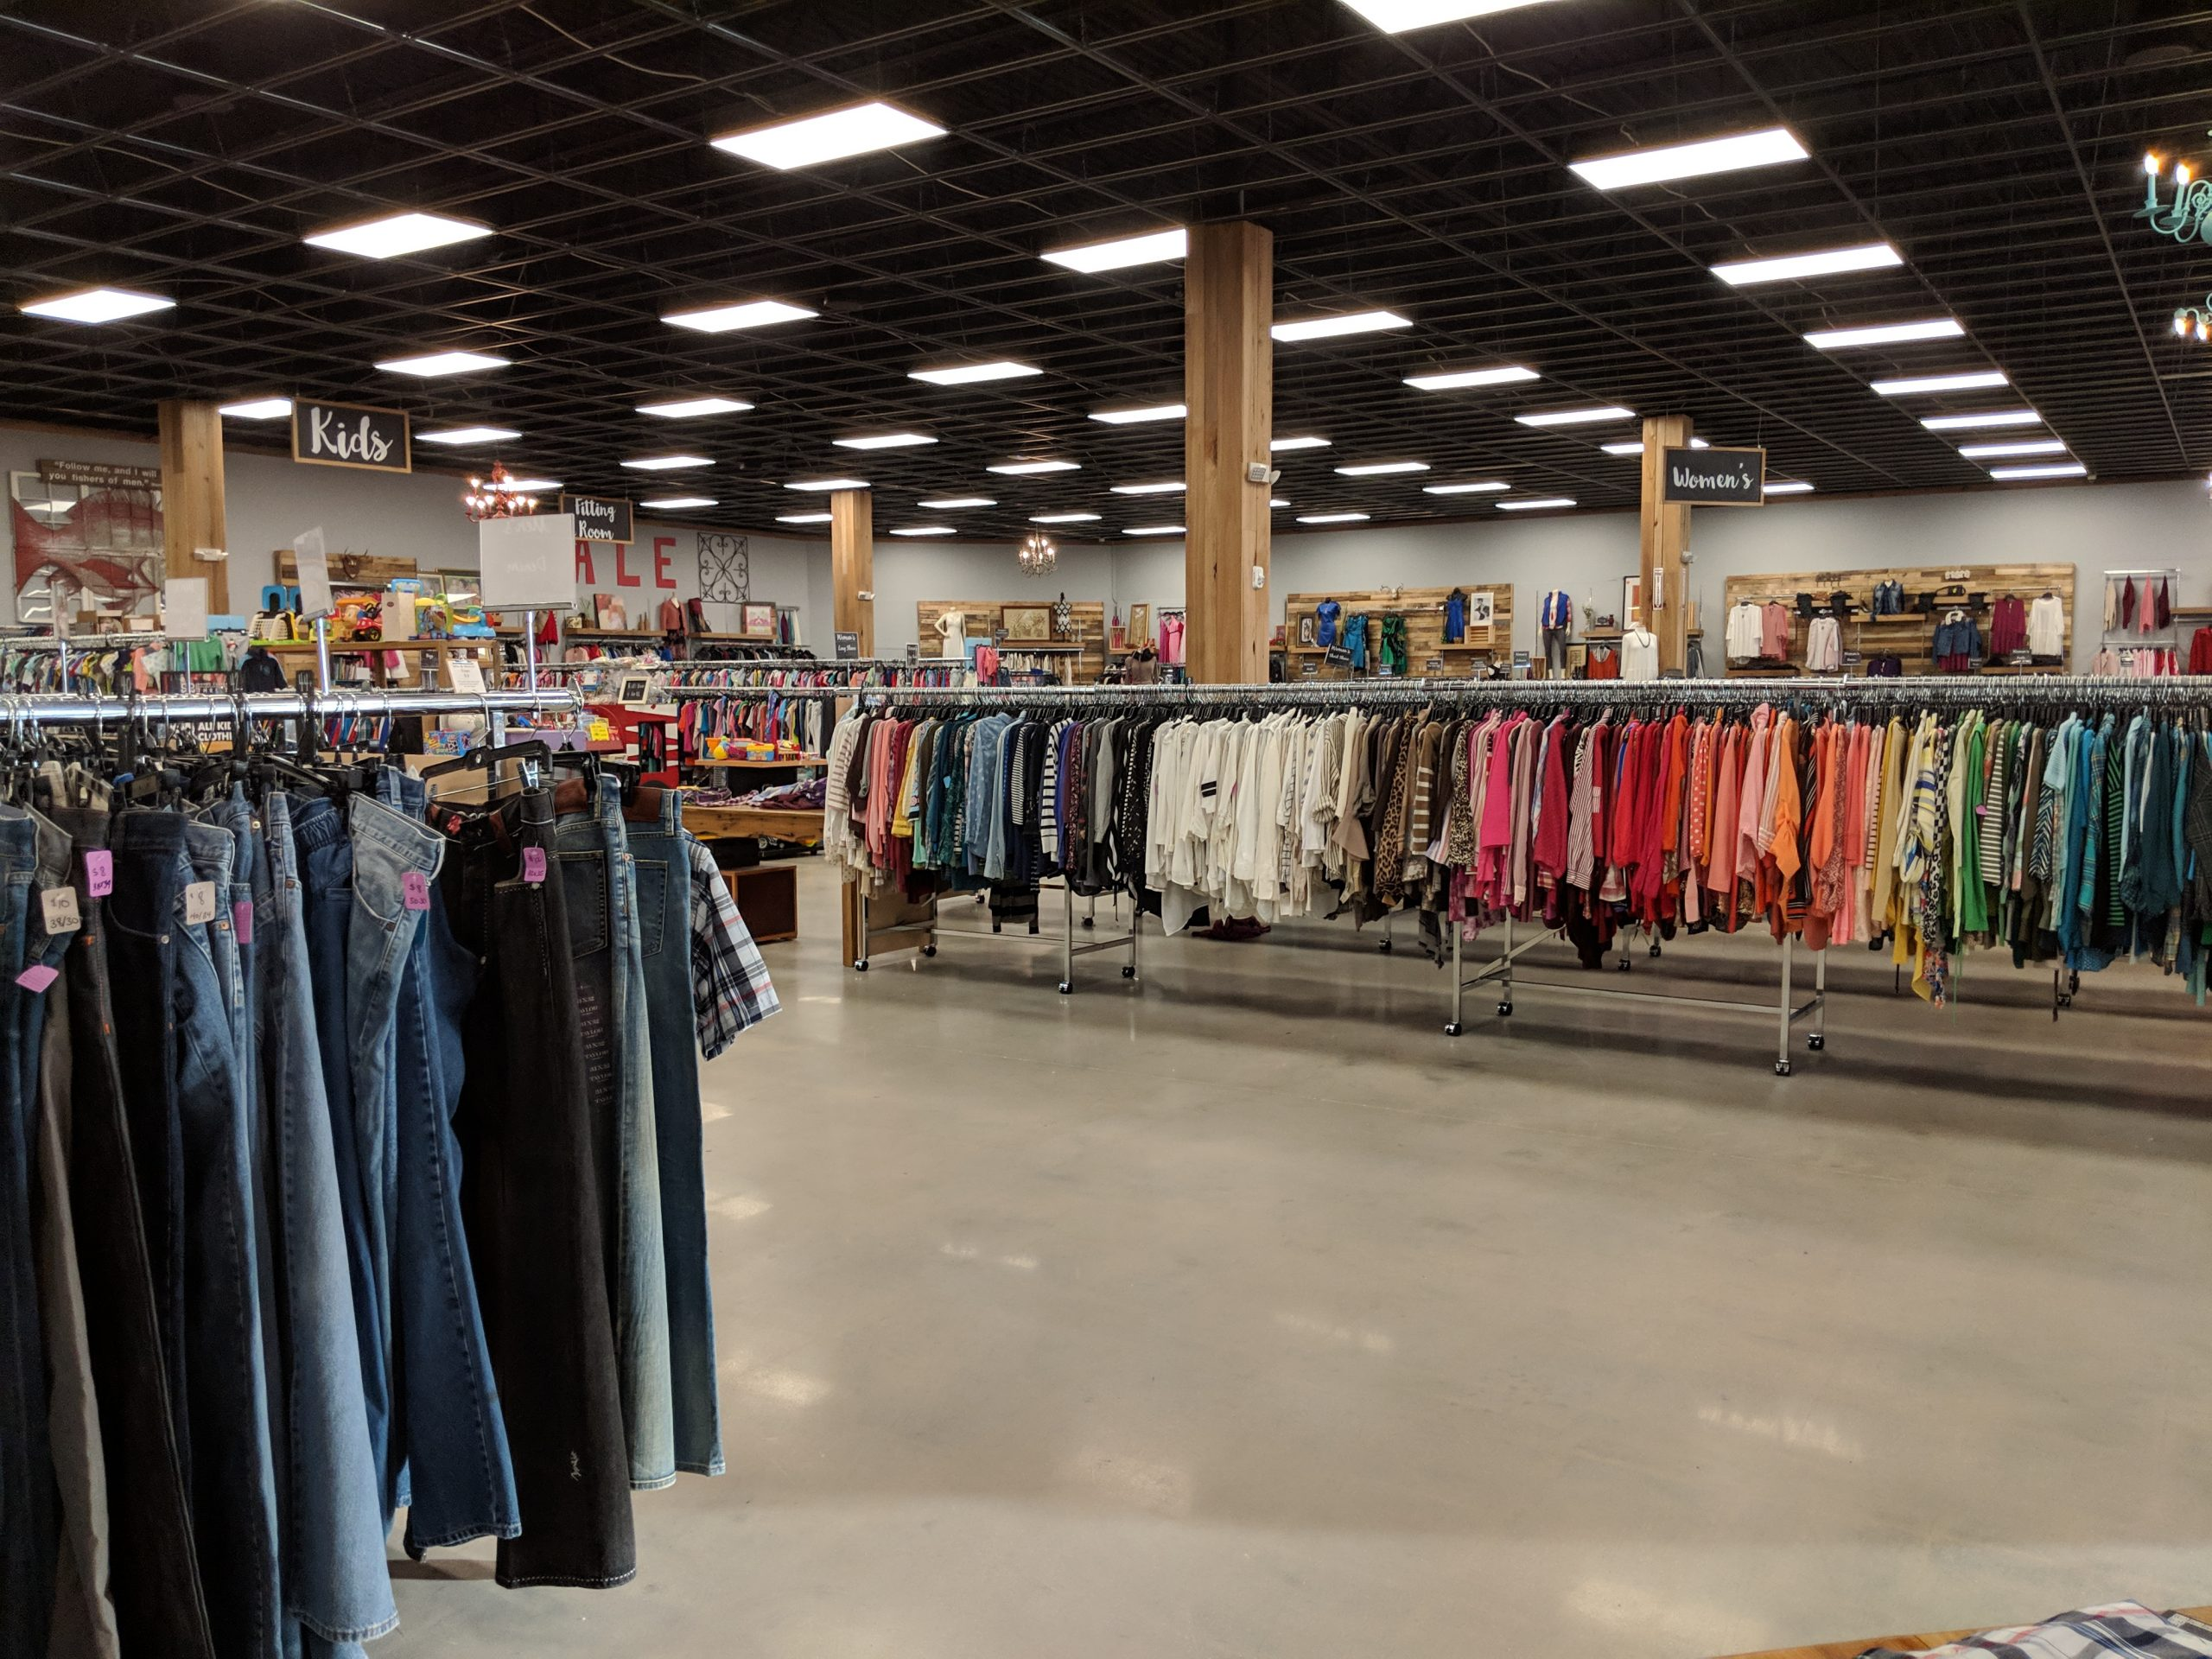 Giant thrift store interior in Florida -we always thrift when house sitting in the USA